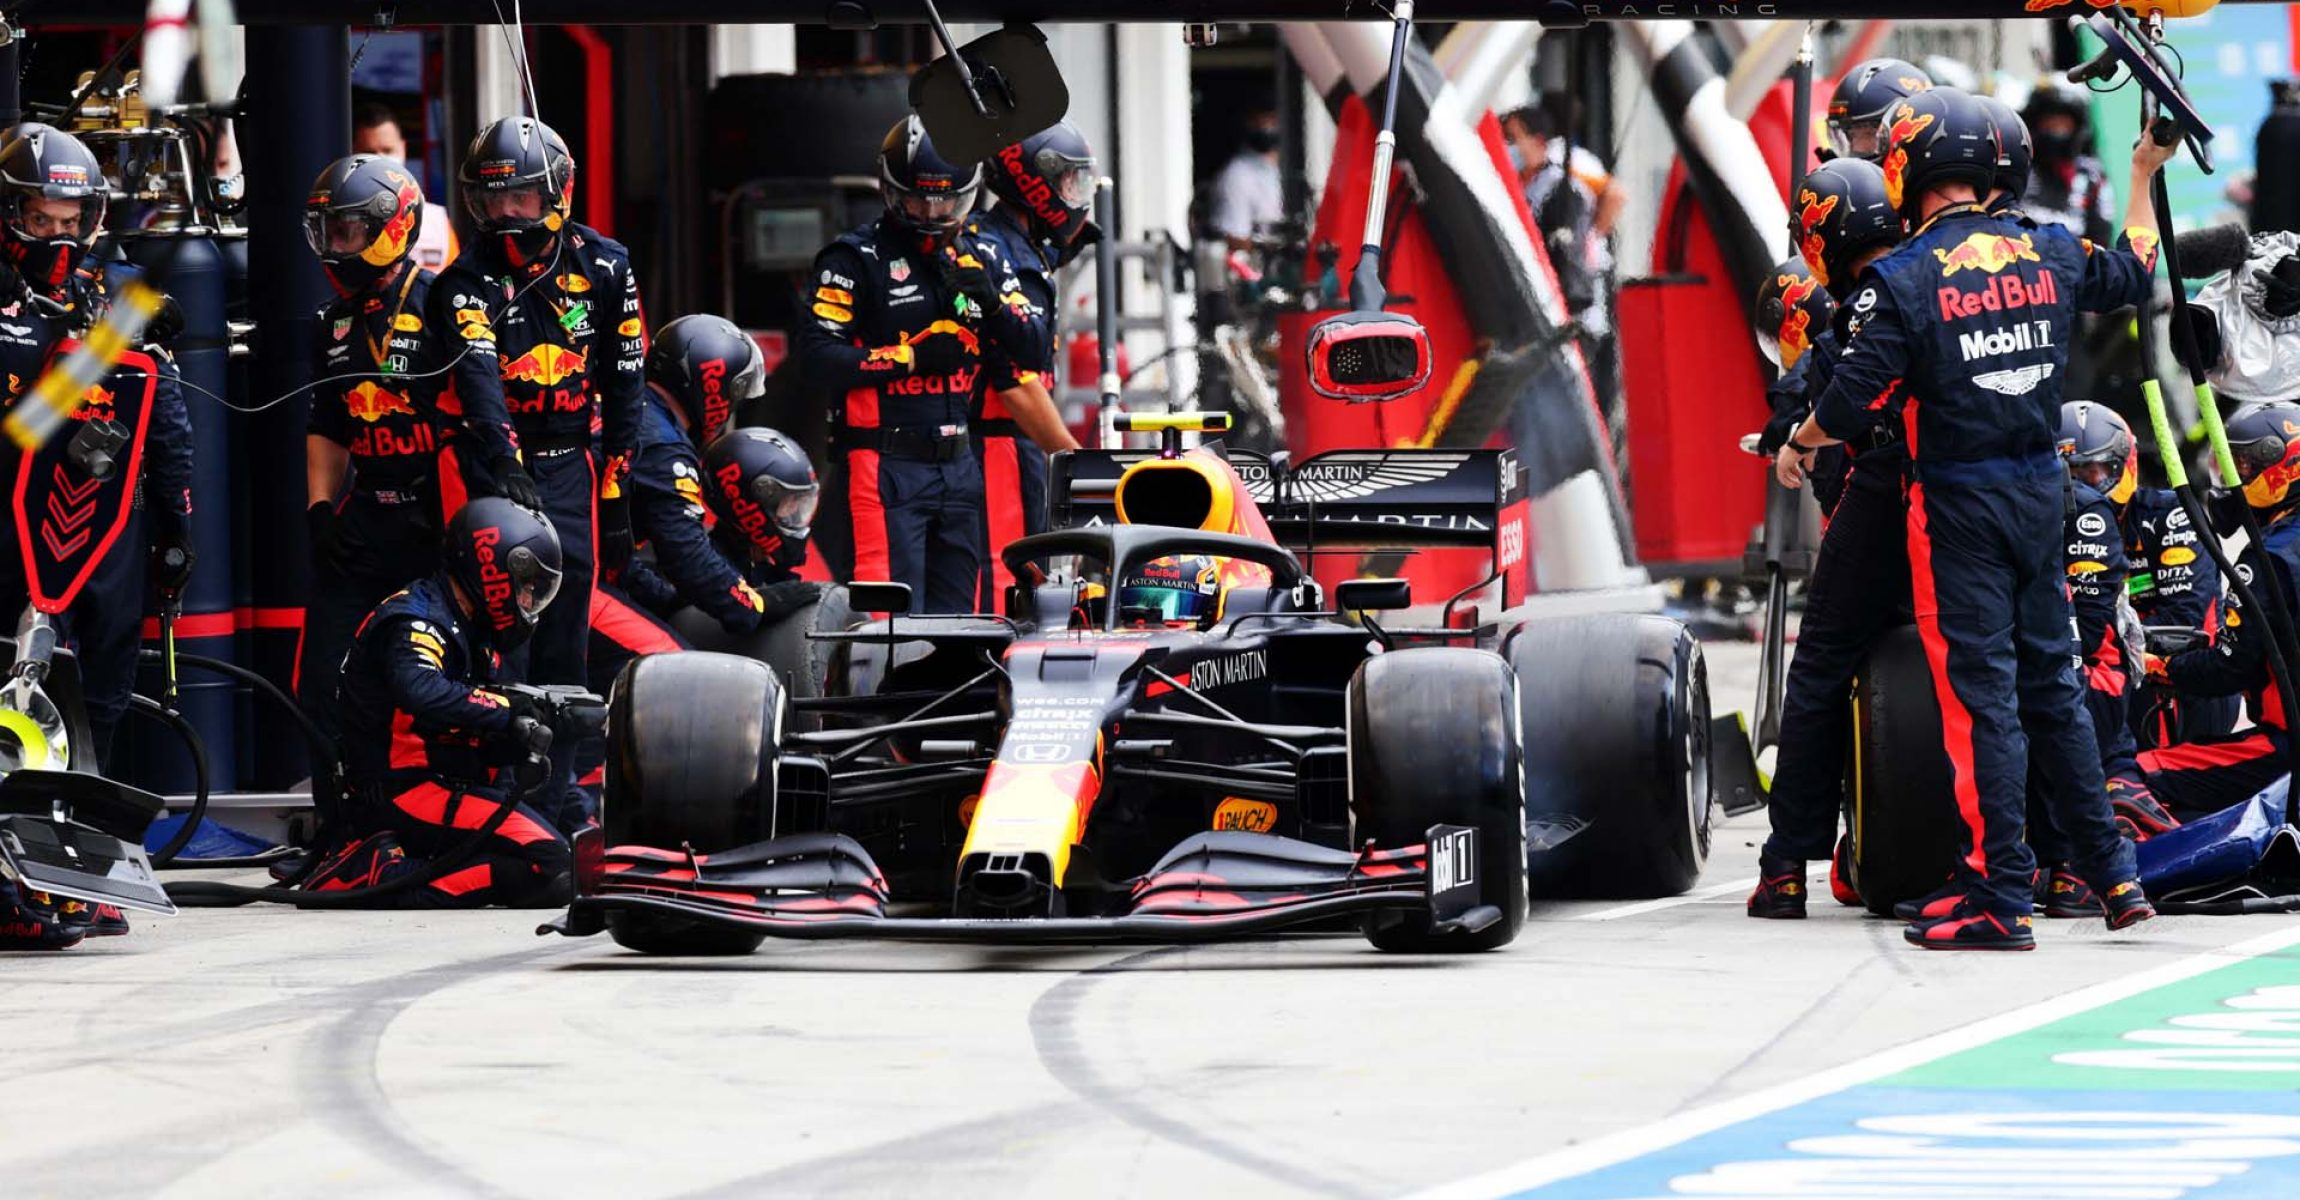 BUDAPEST, HUNGARY - JULY 19: Alexander Albon of Thailand driving the (23) Aston Martin Red Bull Racing RB16 makes a pitstop during the Formula One Grand Prix of Hungary at Hungaroring on July 19, 2020 in Budapest, Hungary. (Photo by Peter Fox/Getty Images) // Getty Images / Red Bull Content Pool // AP-24P7HG6D92111 // Usage for editorial use only //